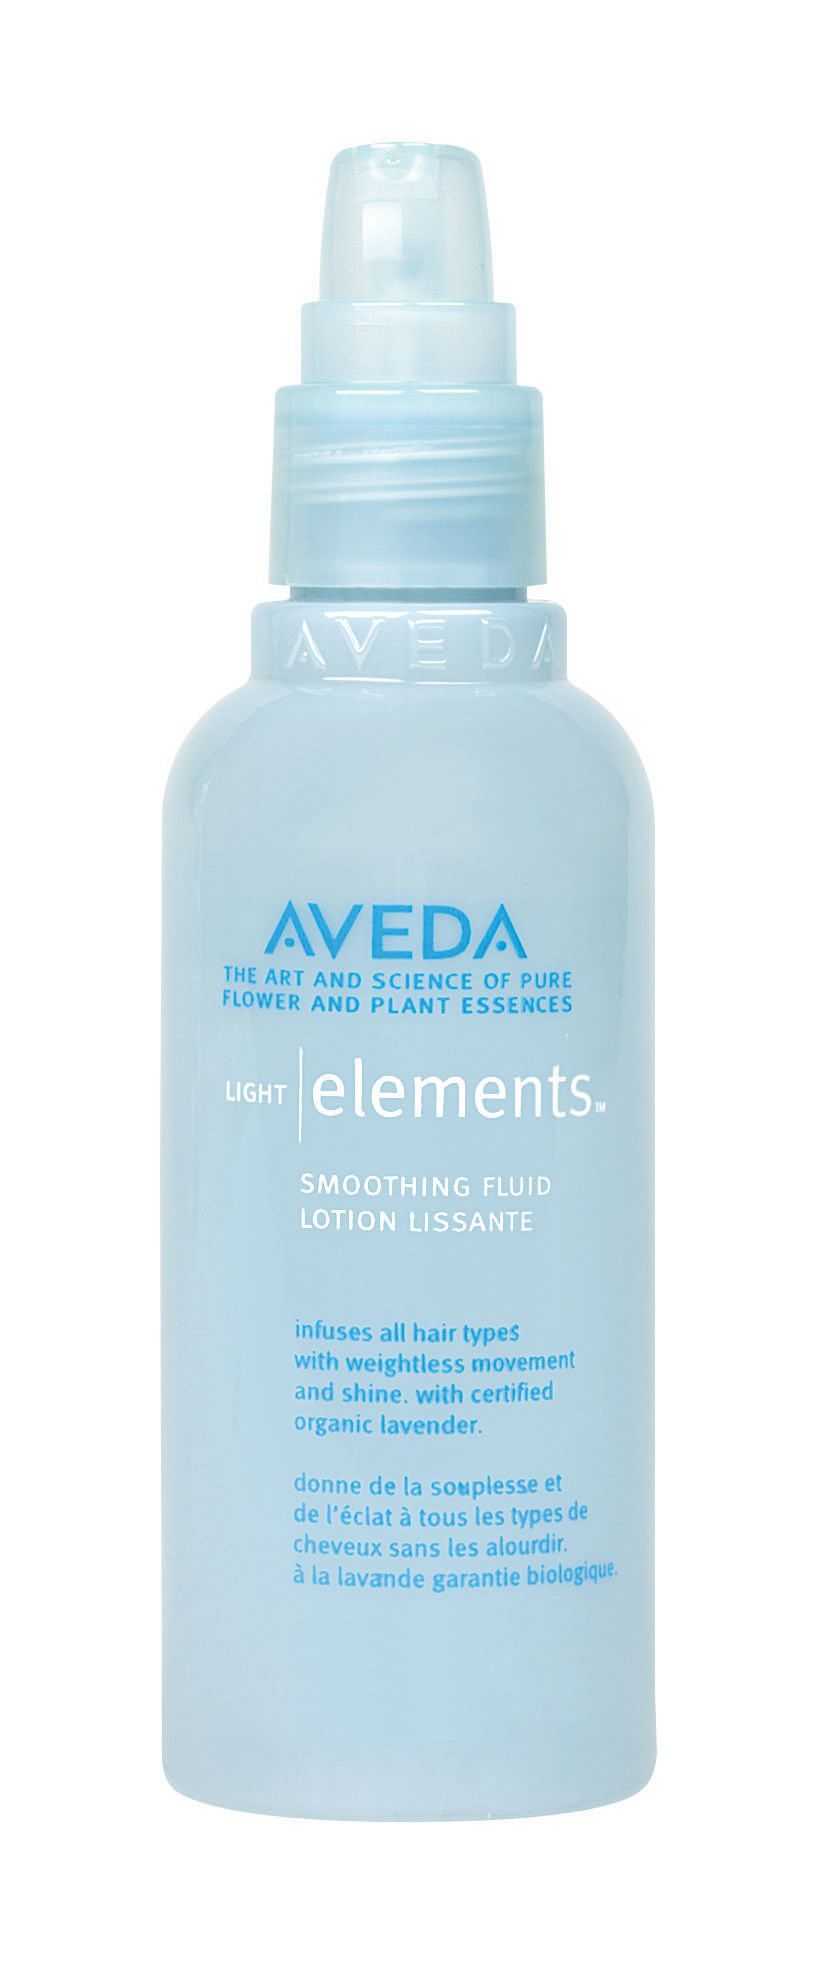 Light Elements Smoothing Fluid 100ml